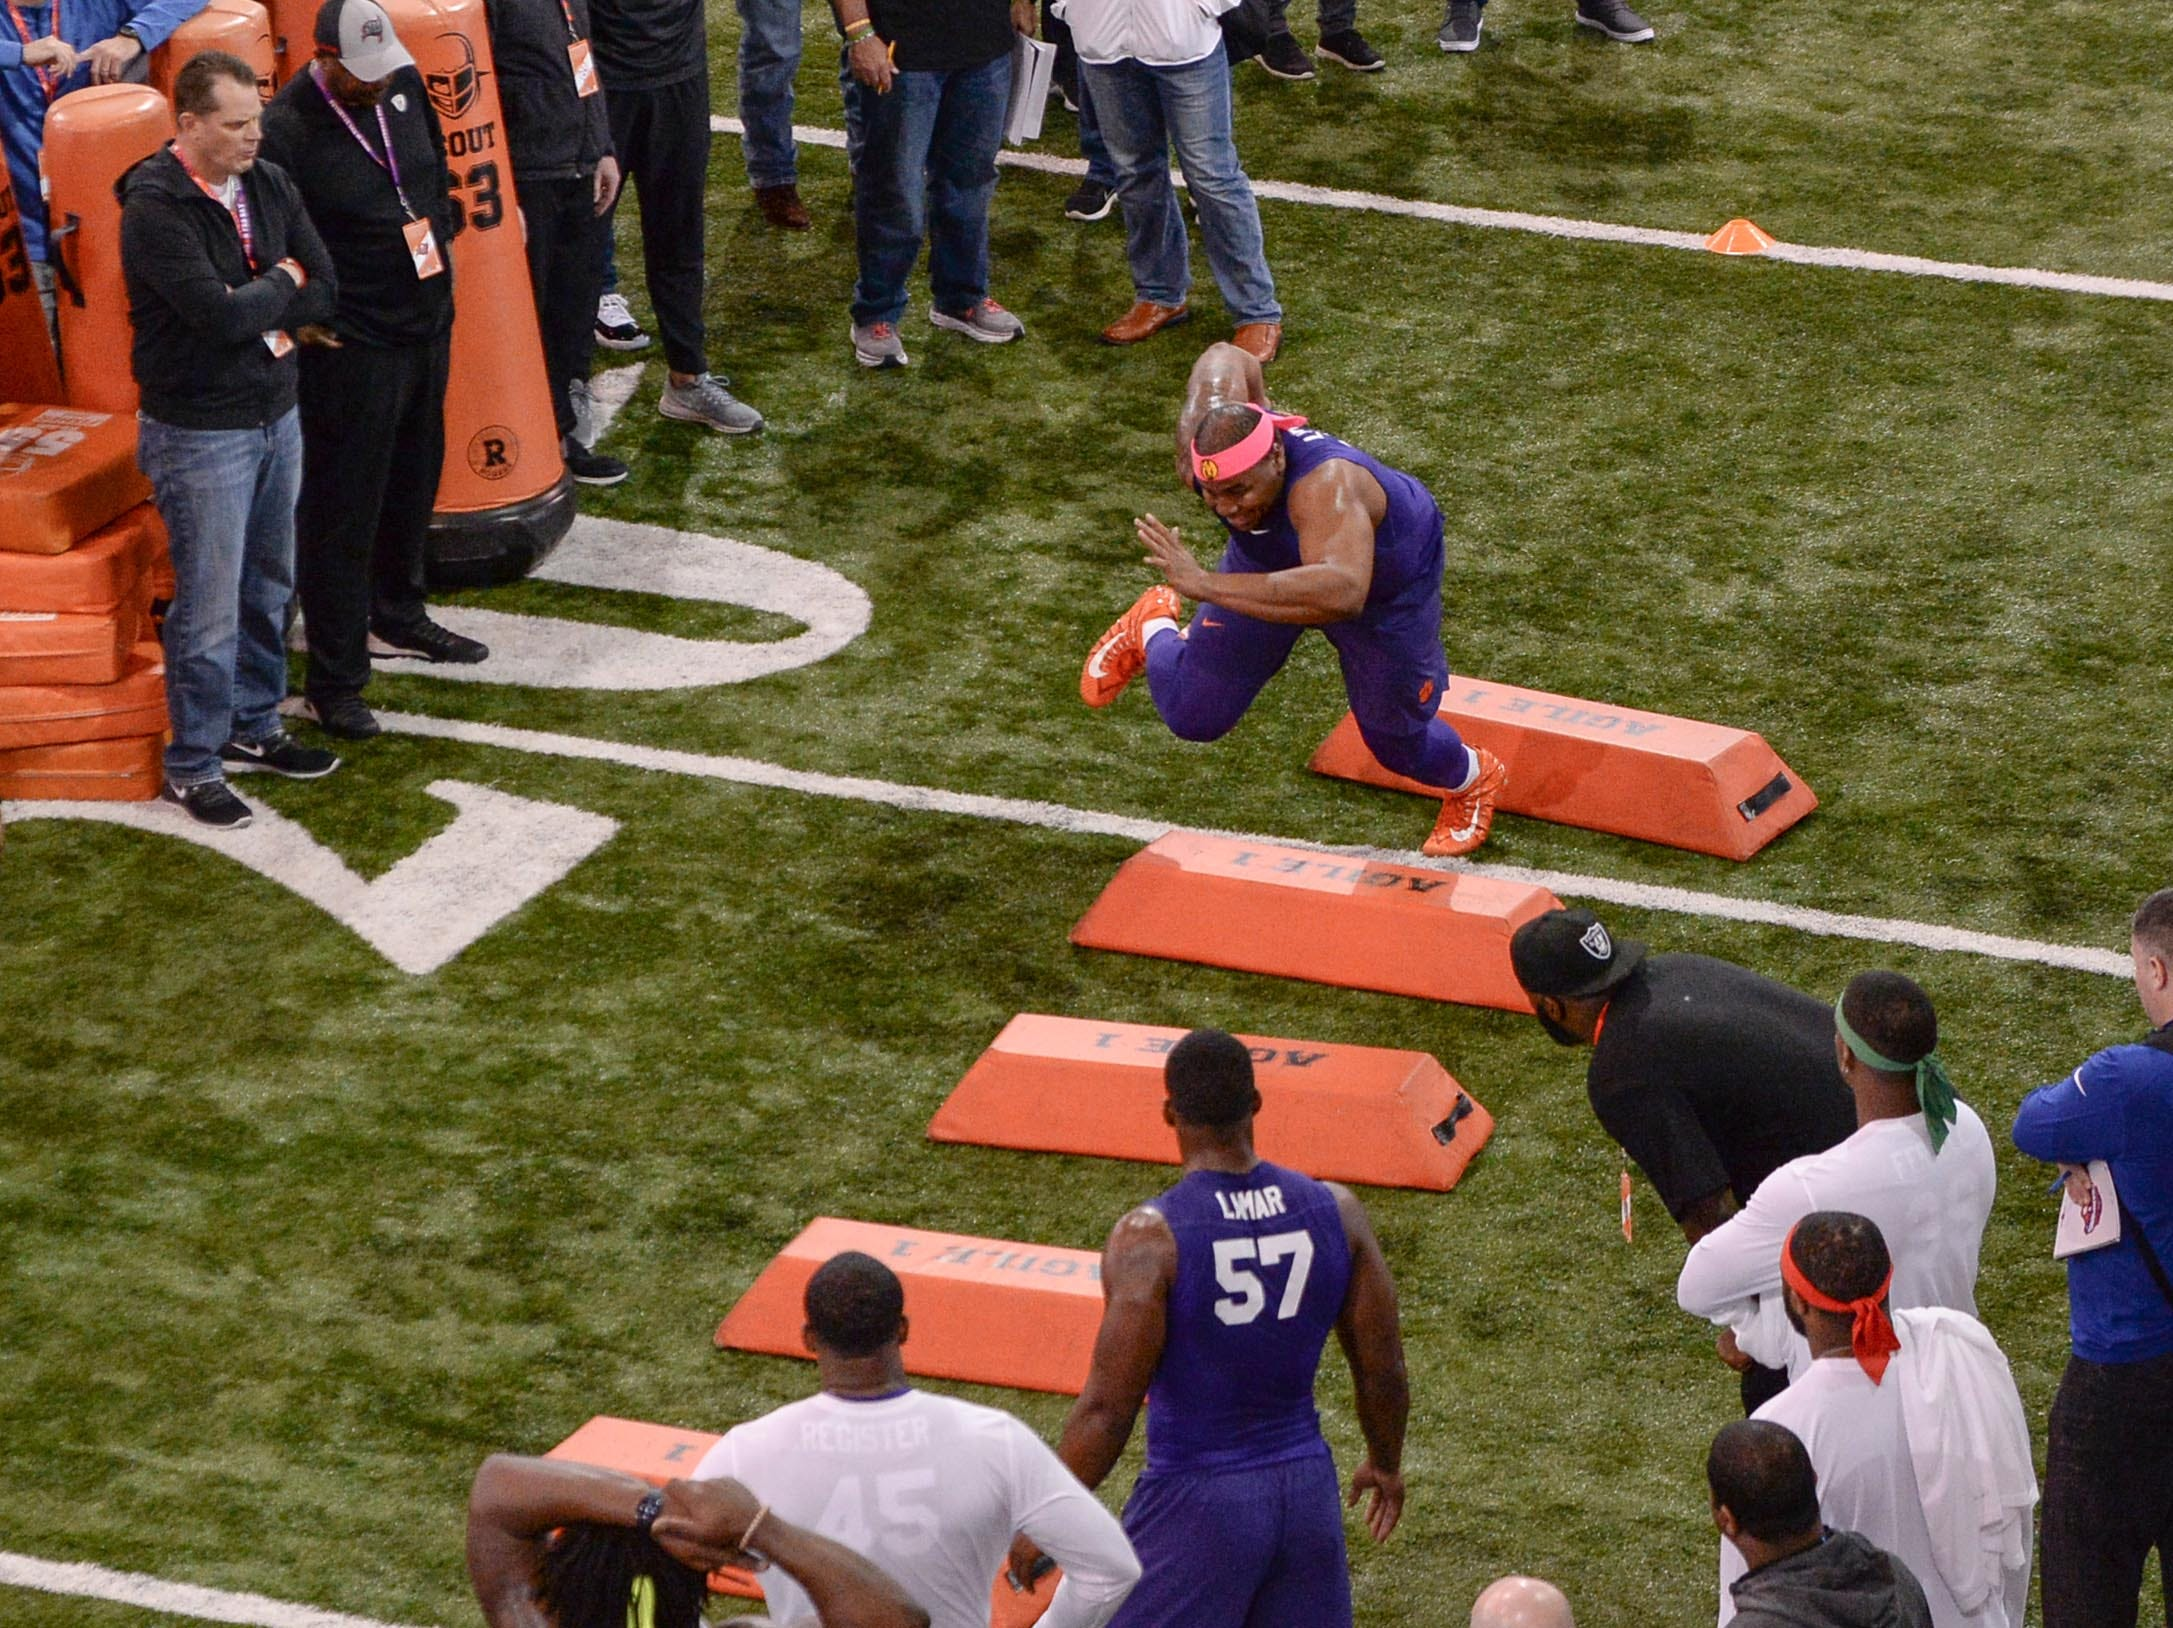 Defensive lineman Dexter Lawrence runs during Clemson pro day at the Poe Indoor Facility in Clemson Thursday, March 14, 2019.